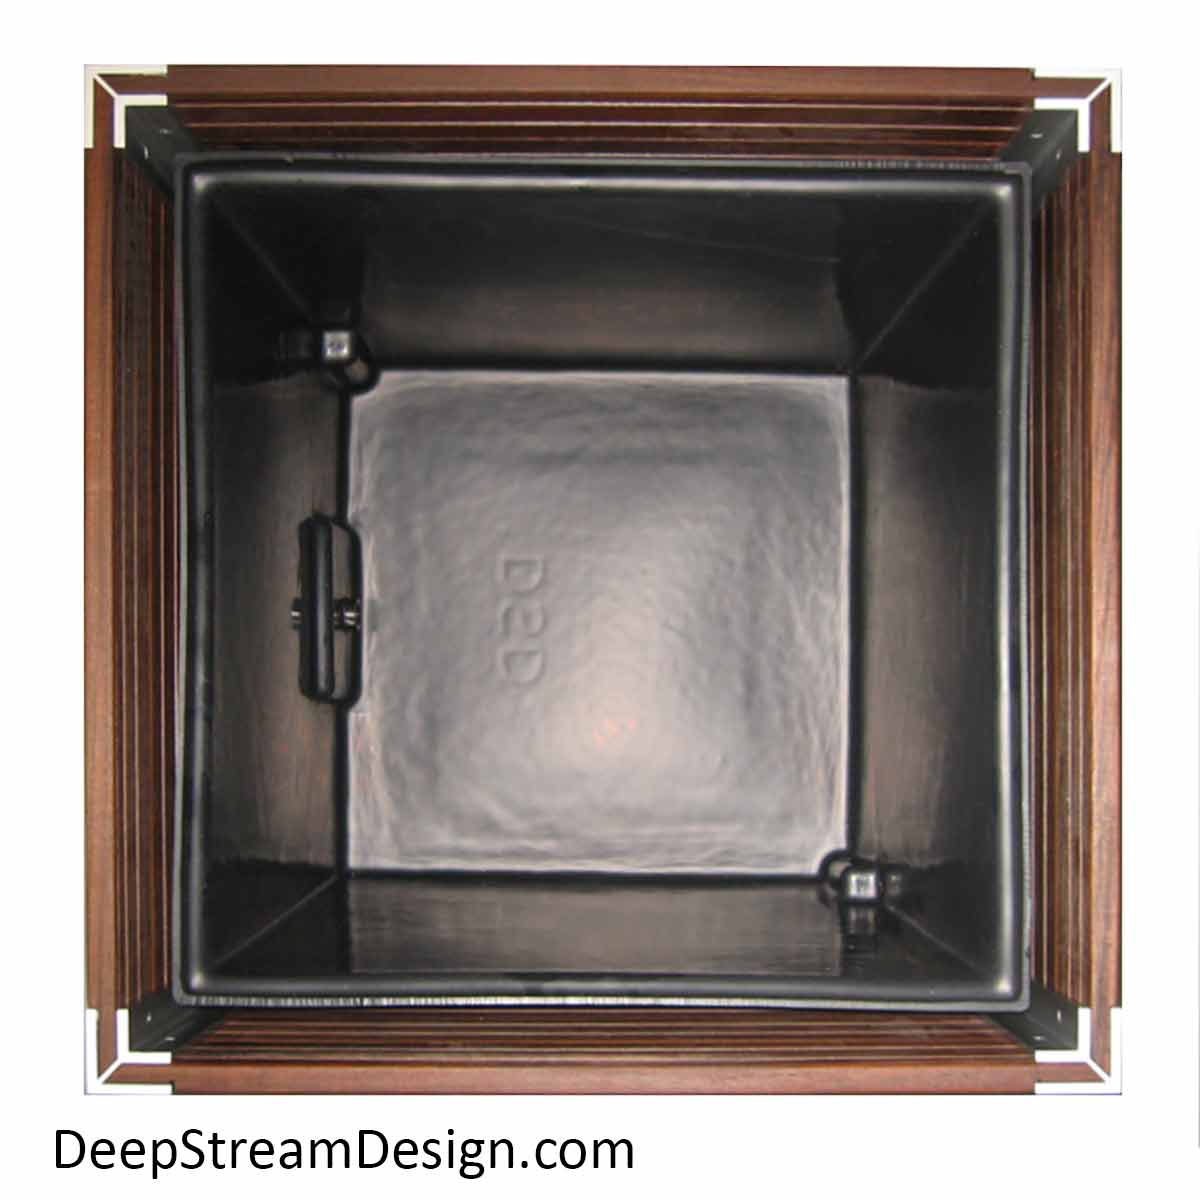 The Best Stereo Planter Speakers are The Best Stereo Speakers covered by The Best Outdoor Enclosures. The Best Planter Outdoor Stereo Speaker Enclosures are built by DeepStream. As commercial planter manufacturer specified by Architects, Landscape architects, Hotel and Restaurant Designers our planter boxes have separate waterproof planter liners with advanced drainage system that bypass your stereo speakers. The gap between the planter box and the planter liner keeps the root ball cool for the best growing conditions while hiding labor saving drip irrigation systems and wiring for lights or outlets.